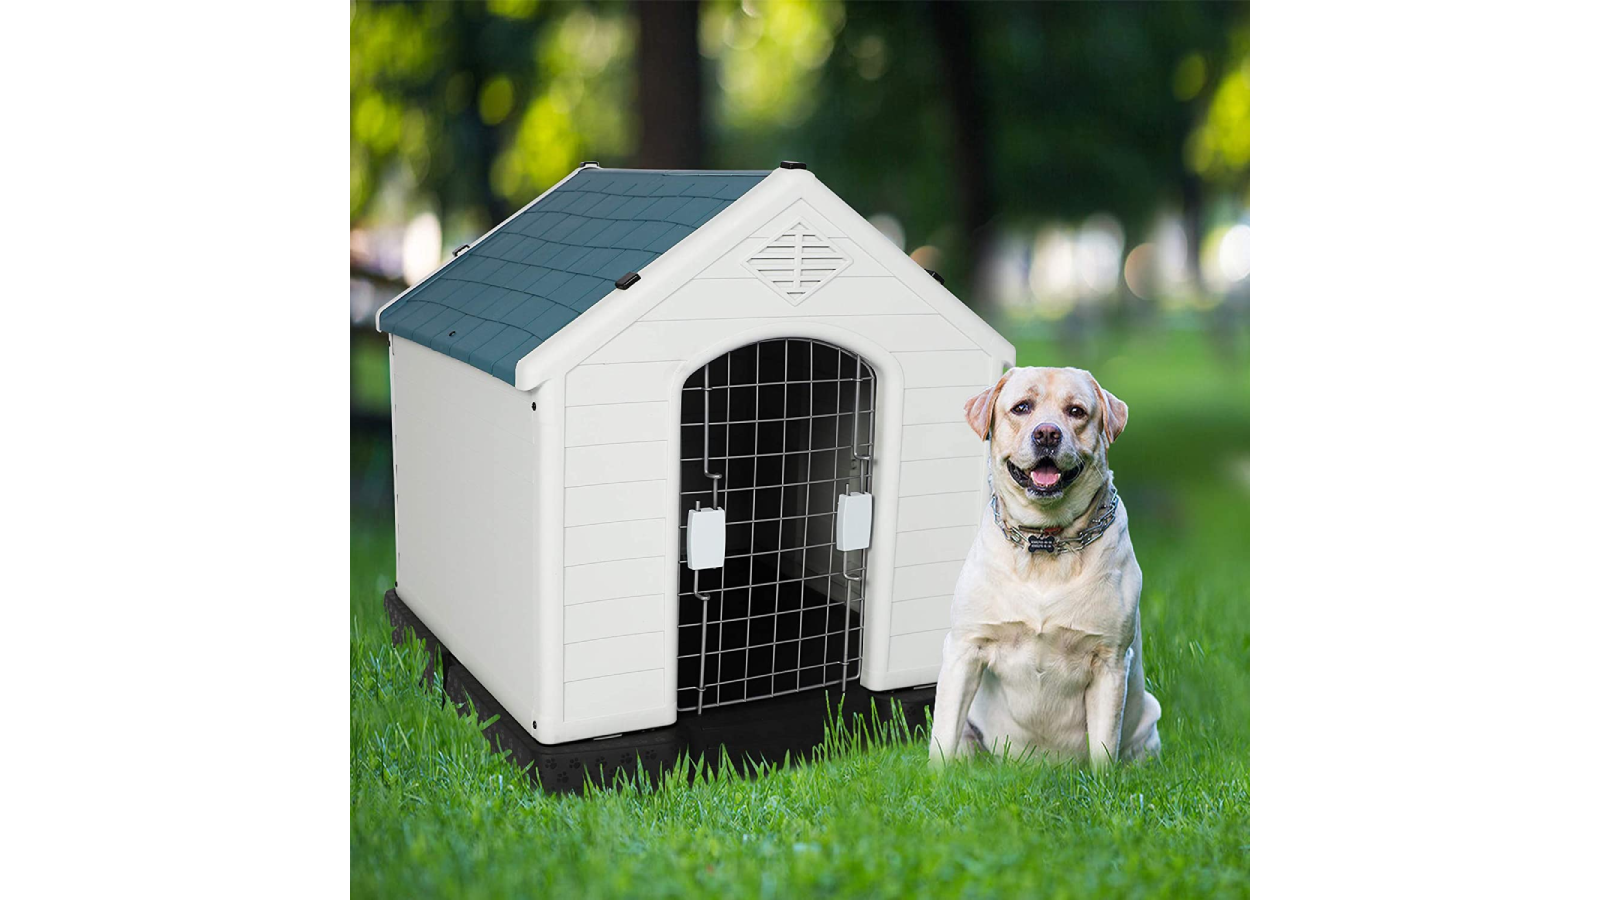 White plastic doghouse with wire door and white dog sitting outside.